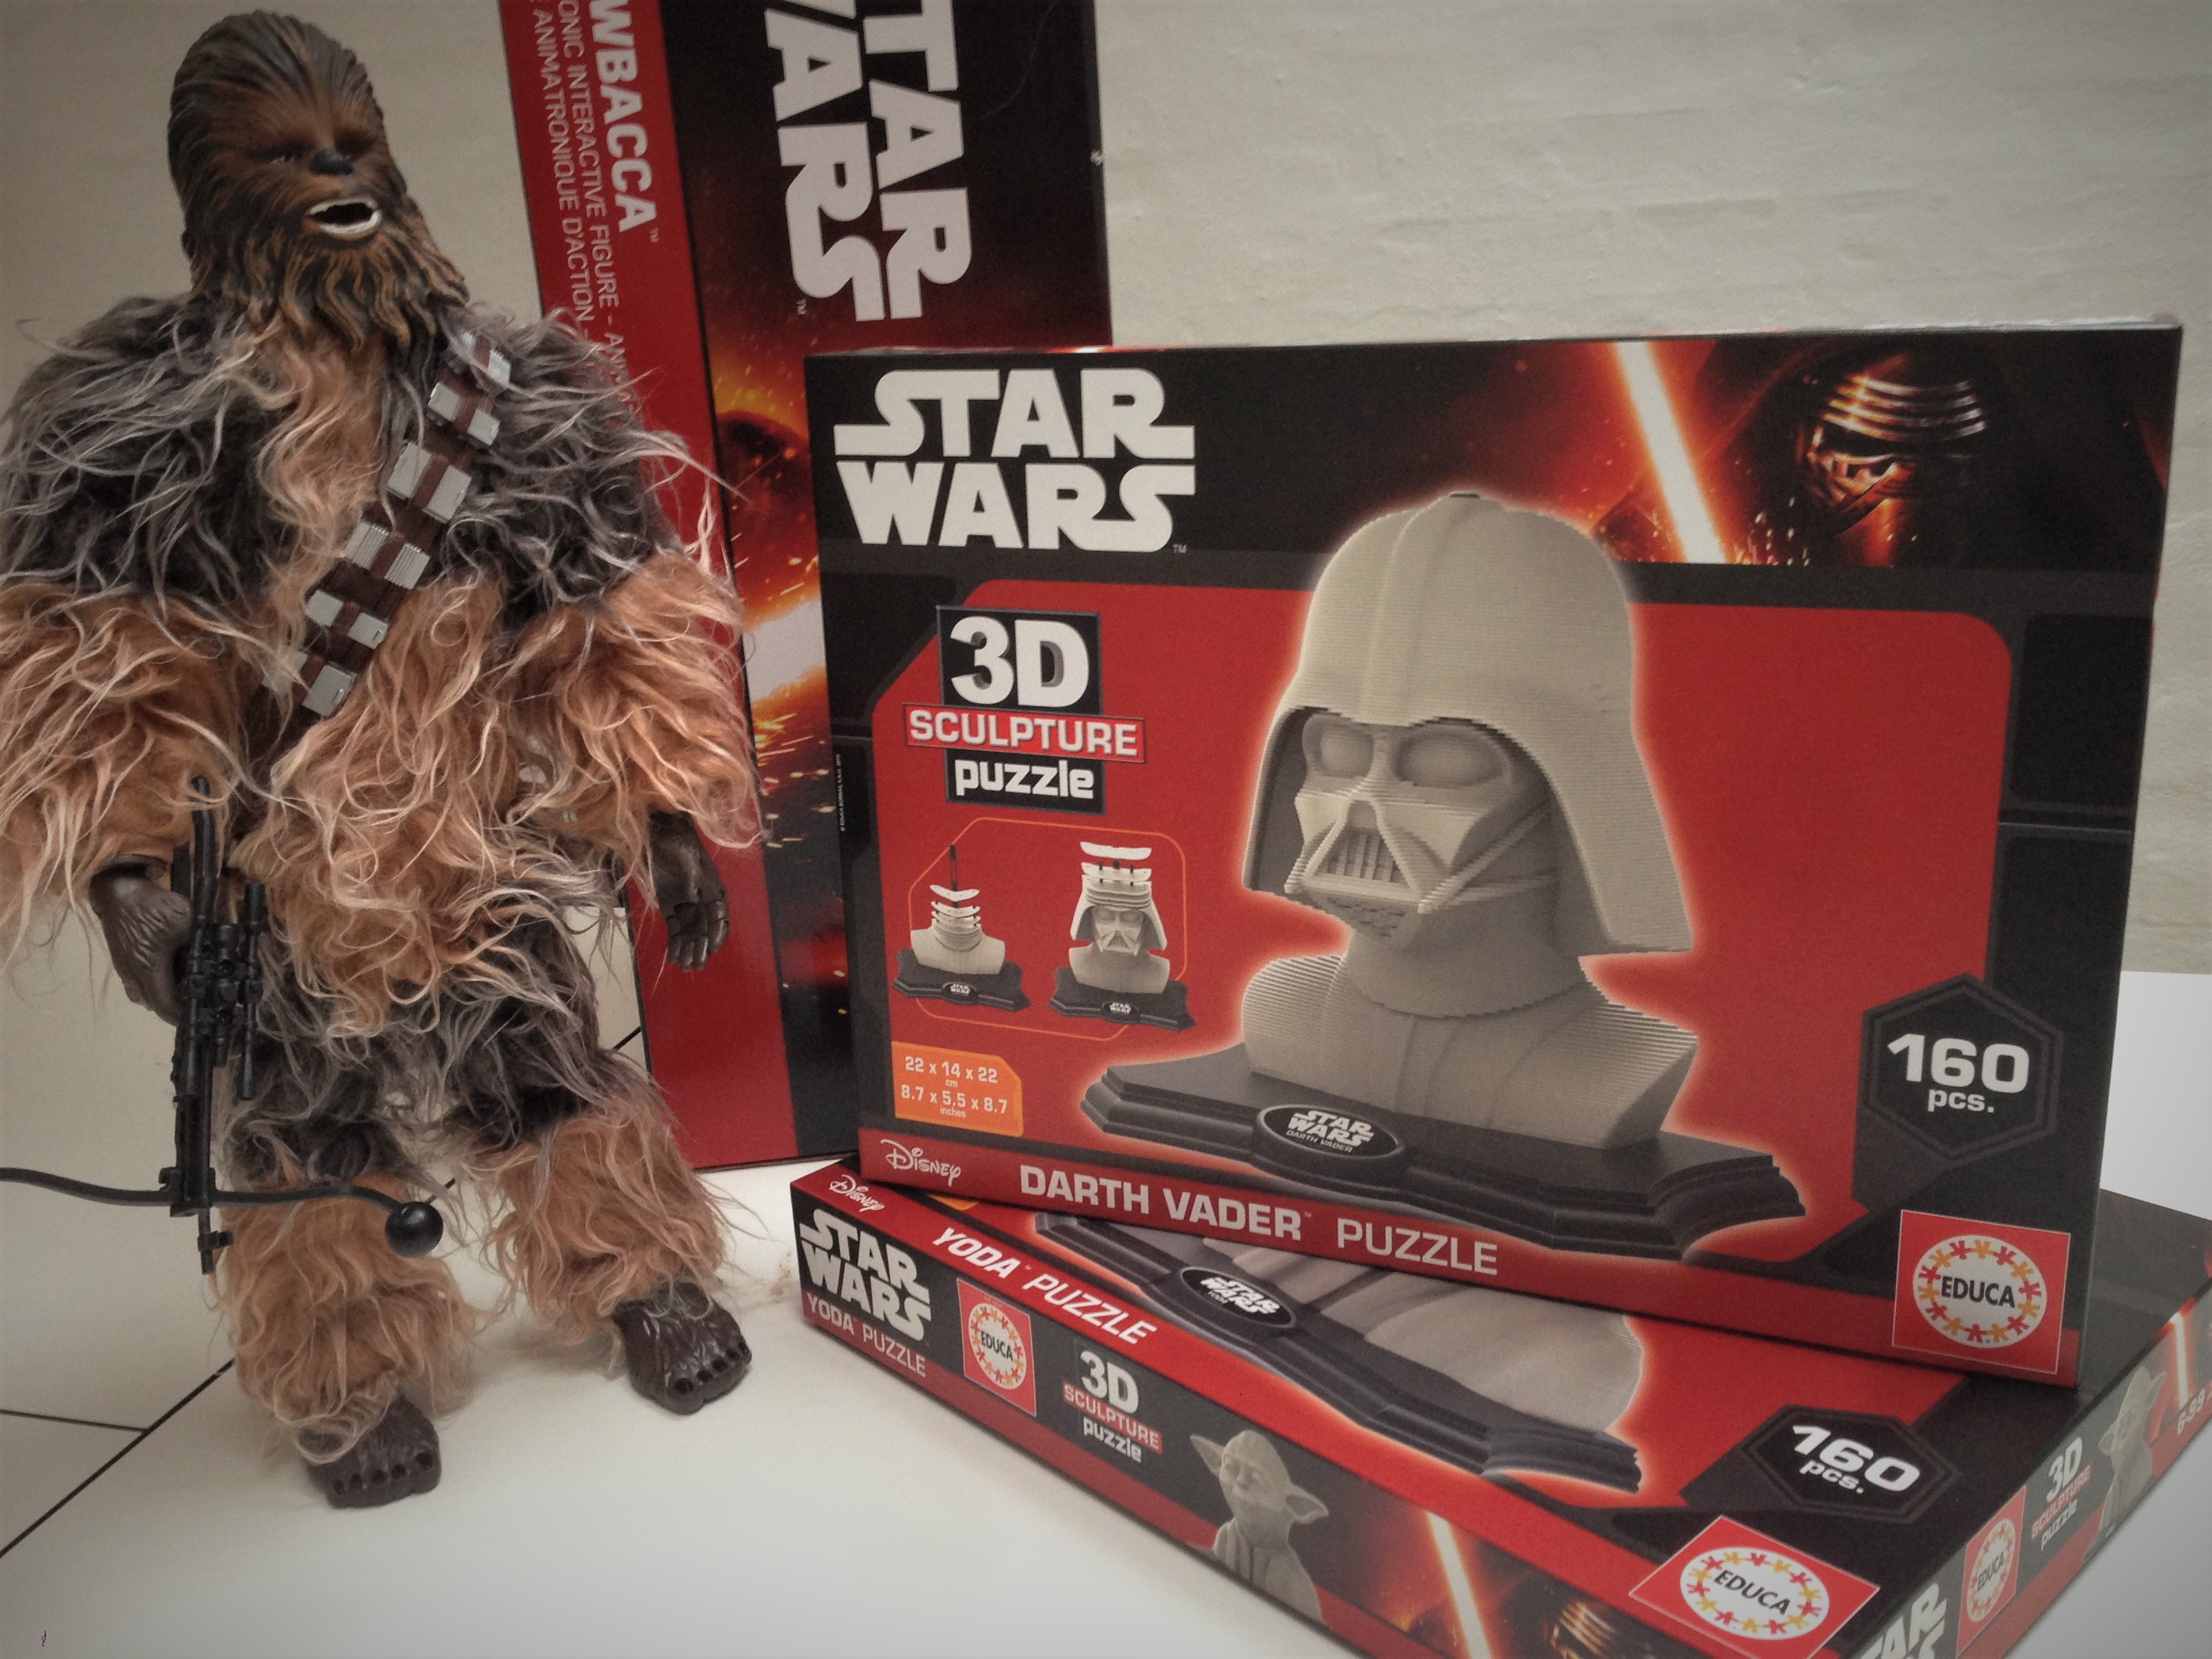 3d-puslespil-disney-educa-star-wars-yoda-darth-vader-fiktion-kultur-maki-8